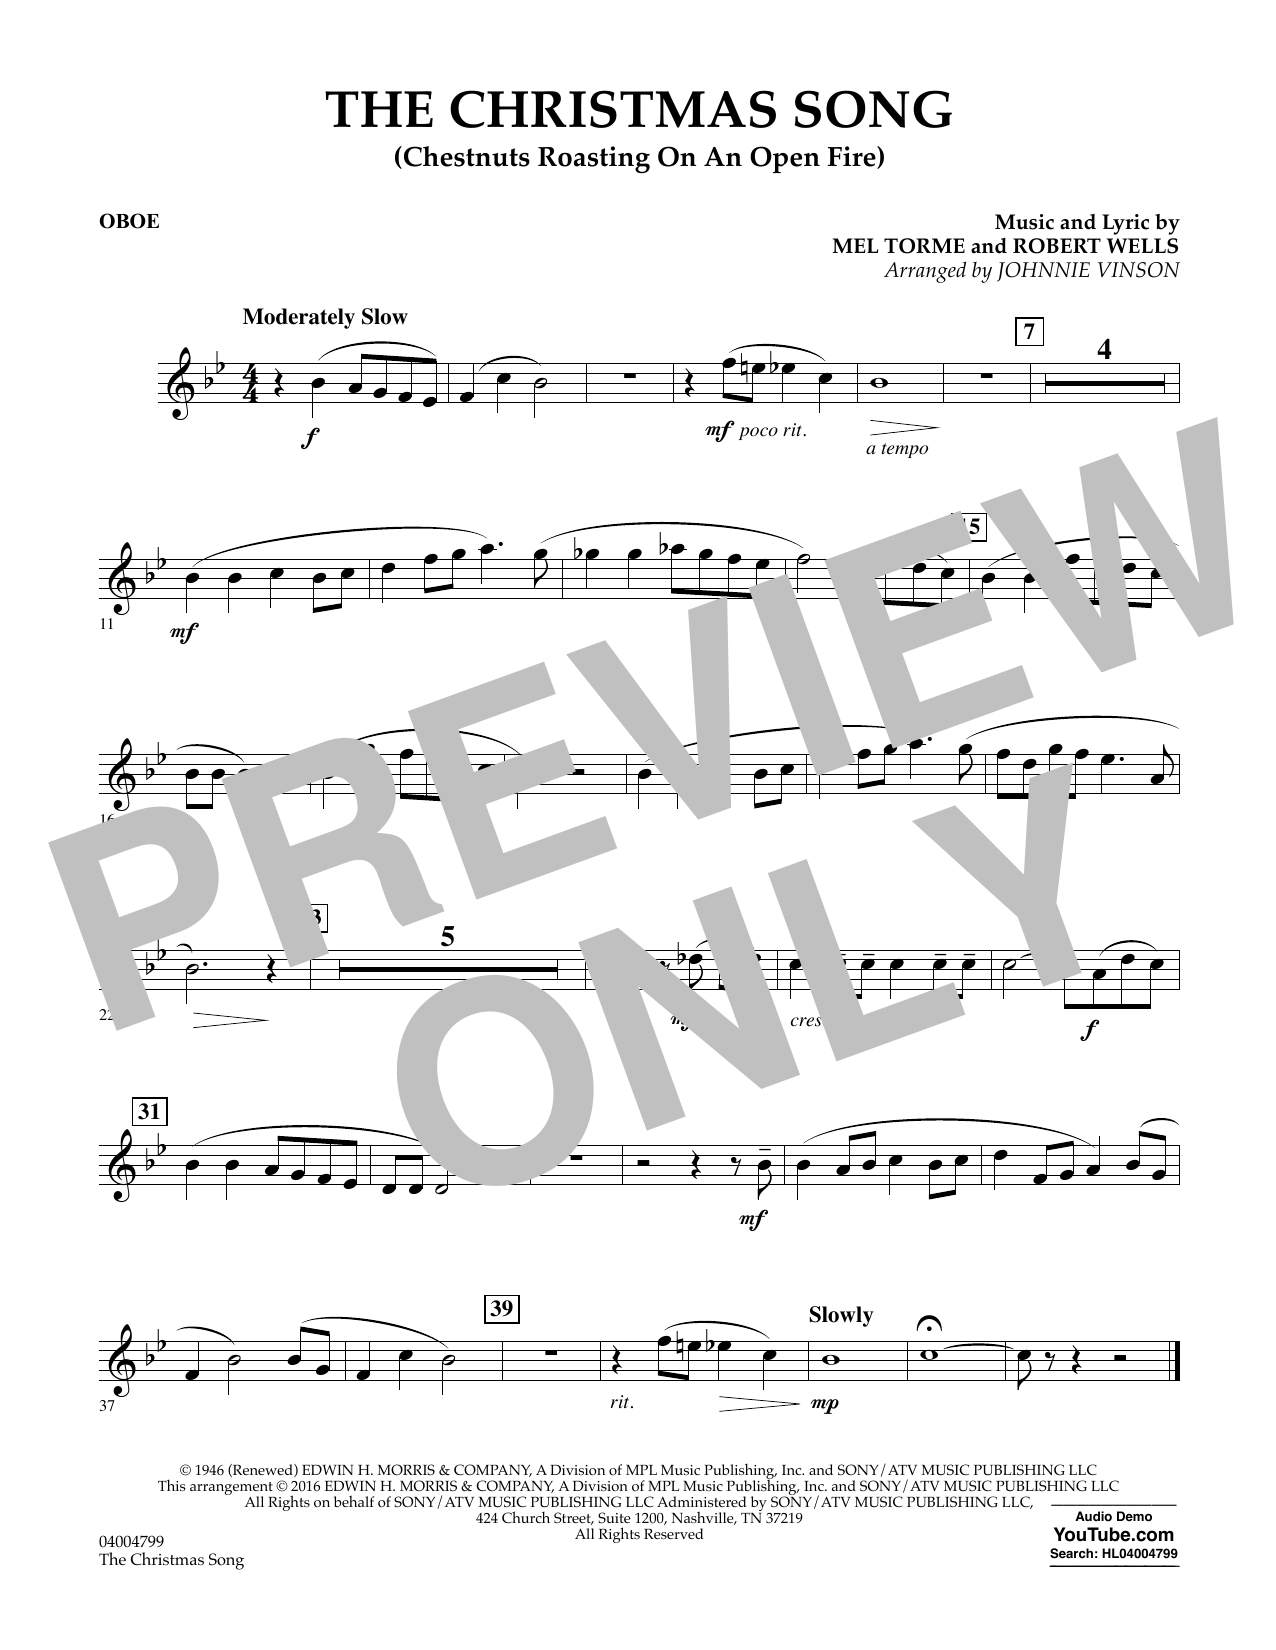 The Christmas Song (Chestnuts Roasting on an Open Fire) - Oboe (Concert Band)